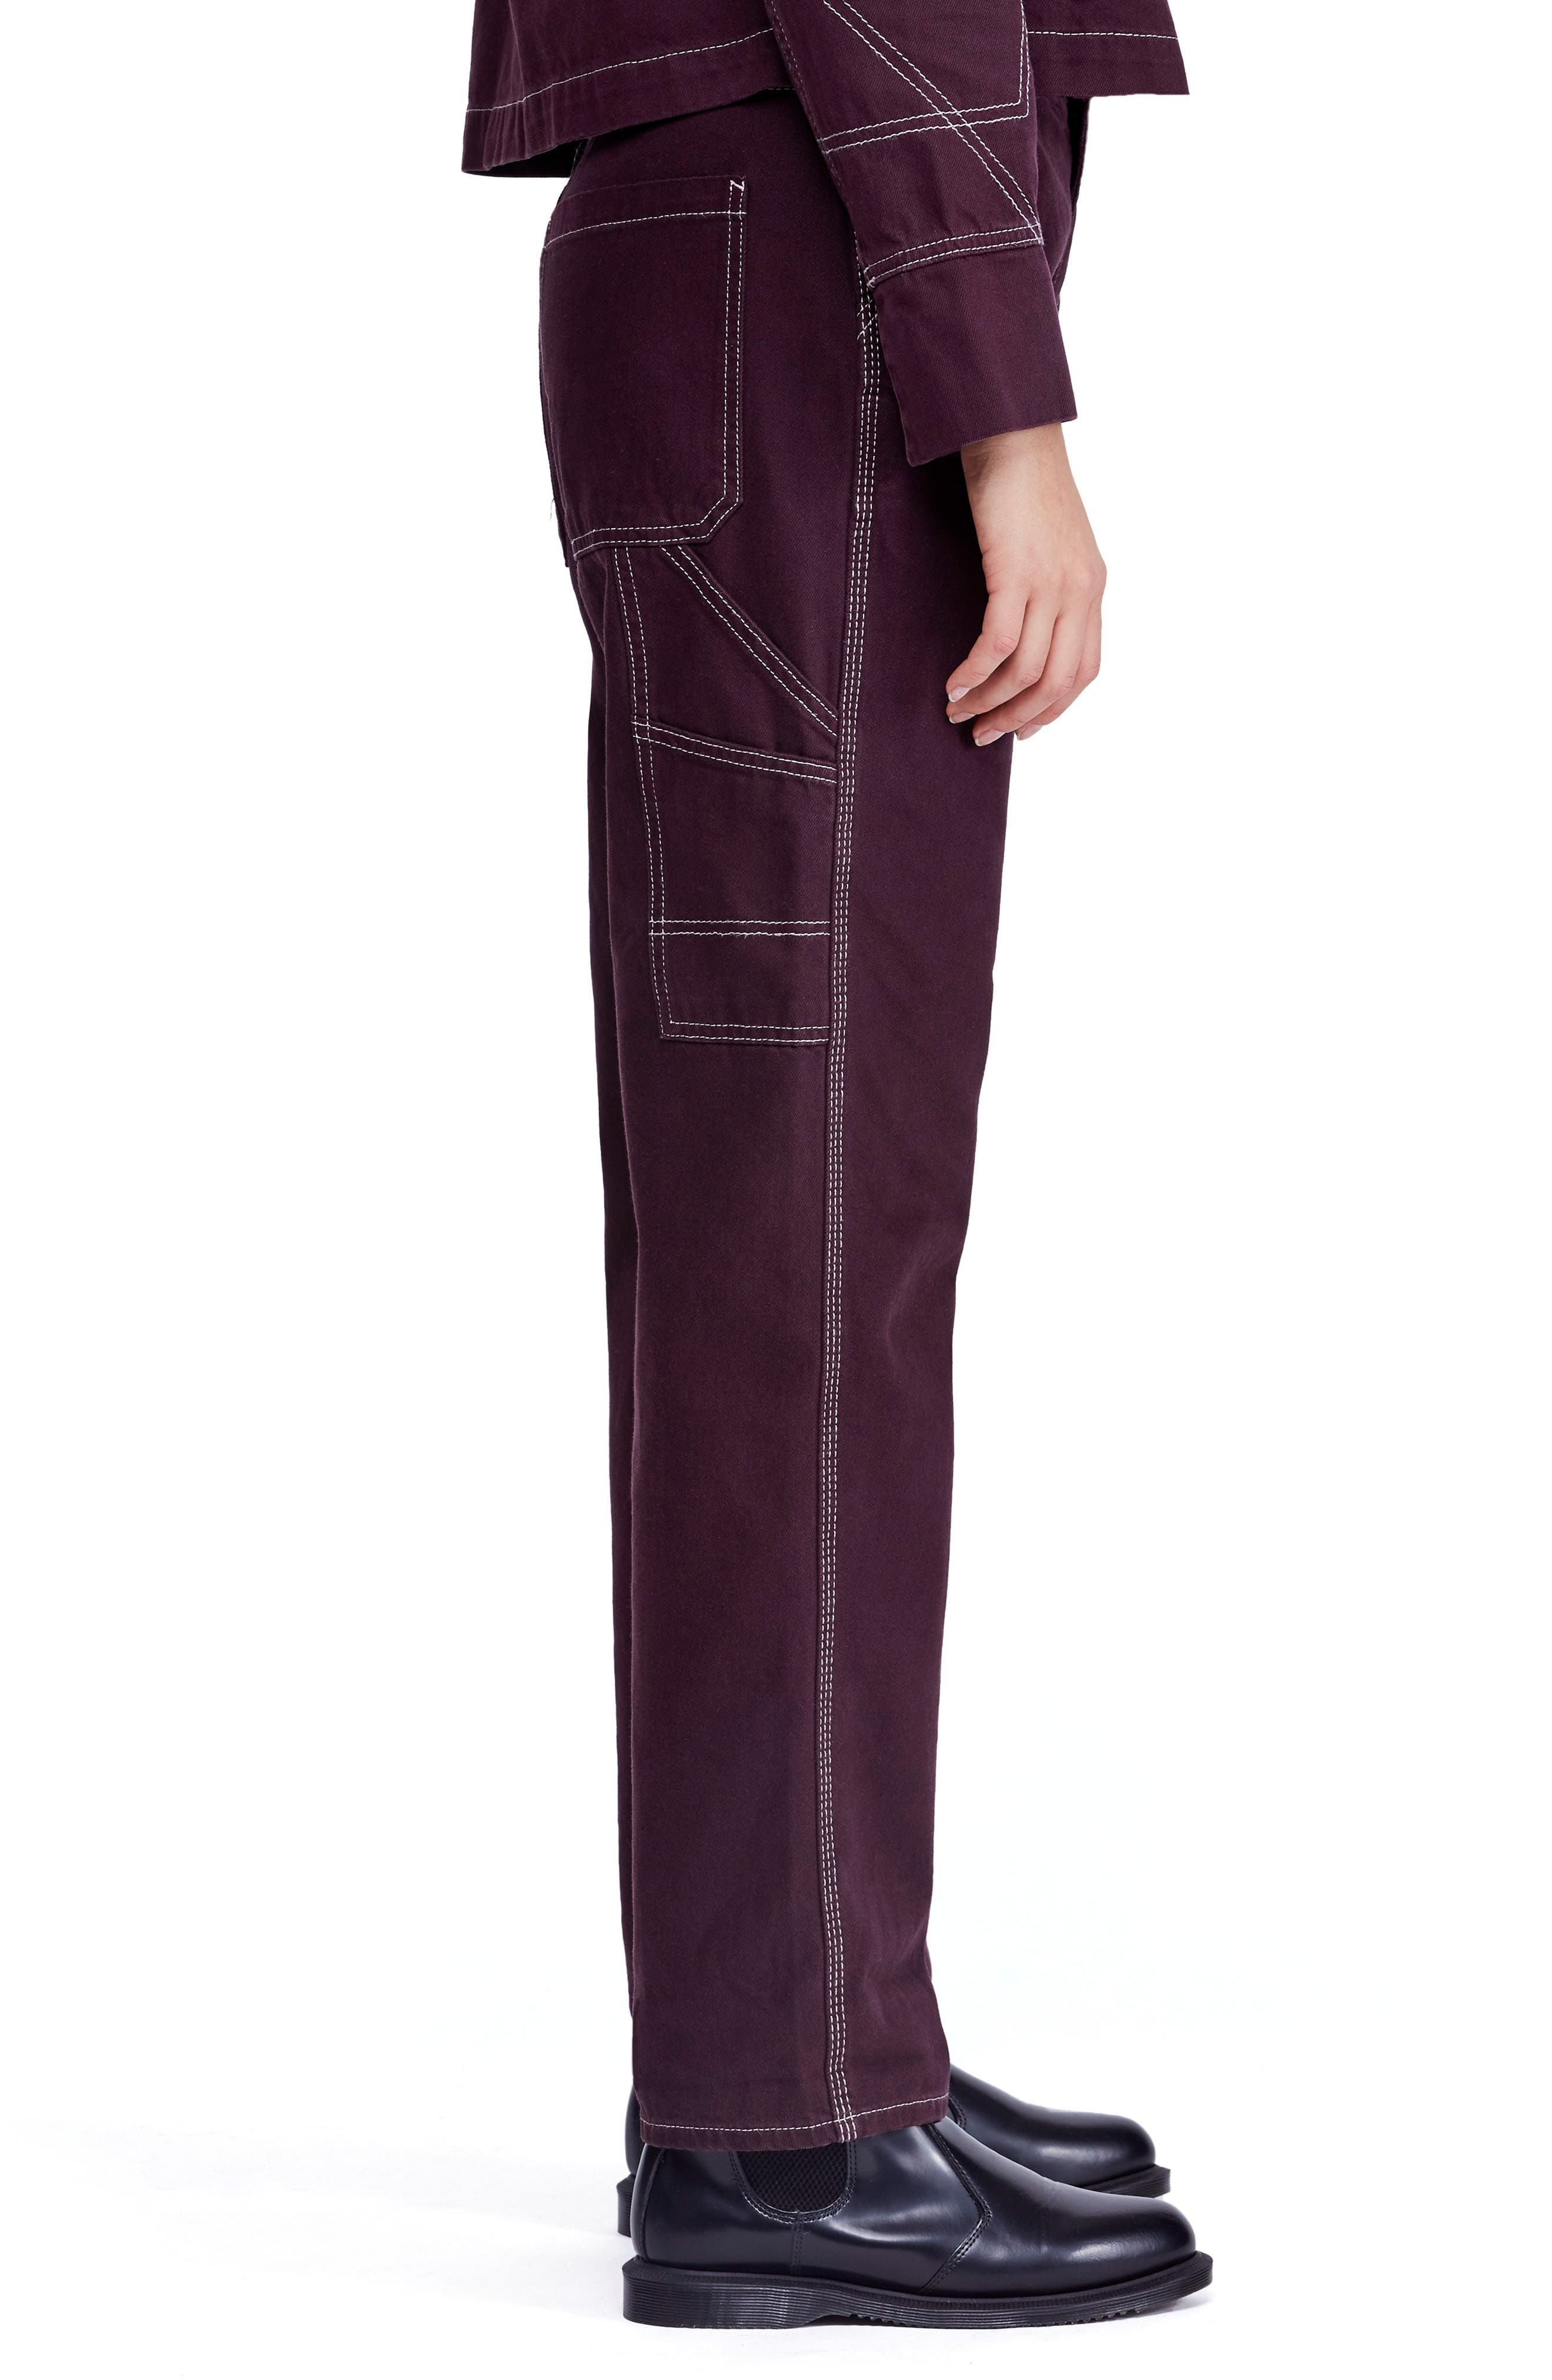 Urban Outfitters Workwear Pants,                             Alternate thumbnail 3, color,                             WINE